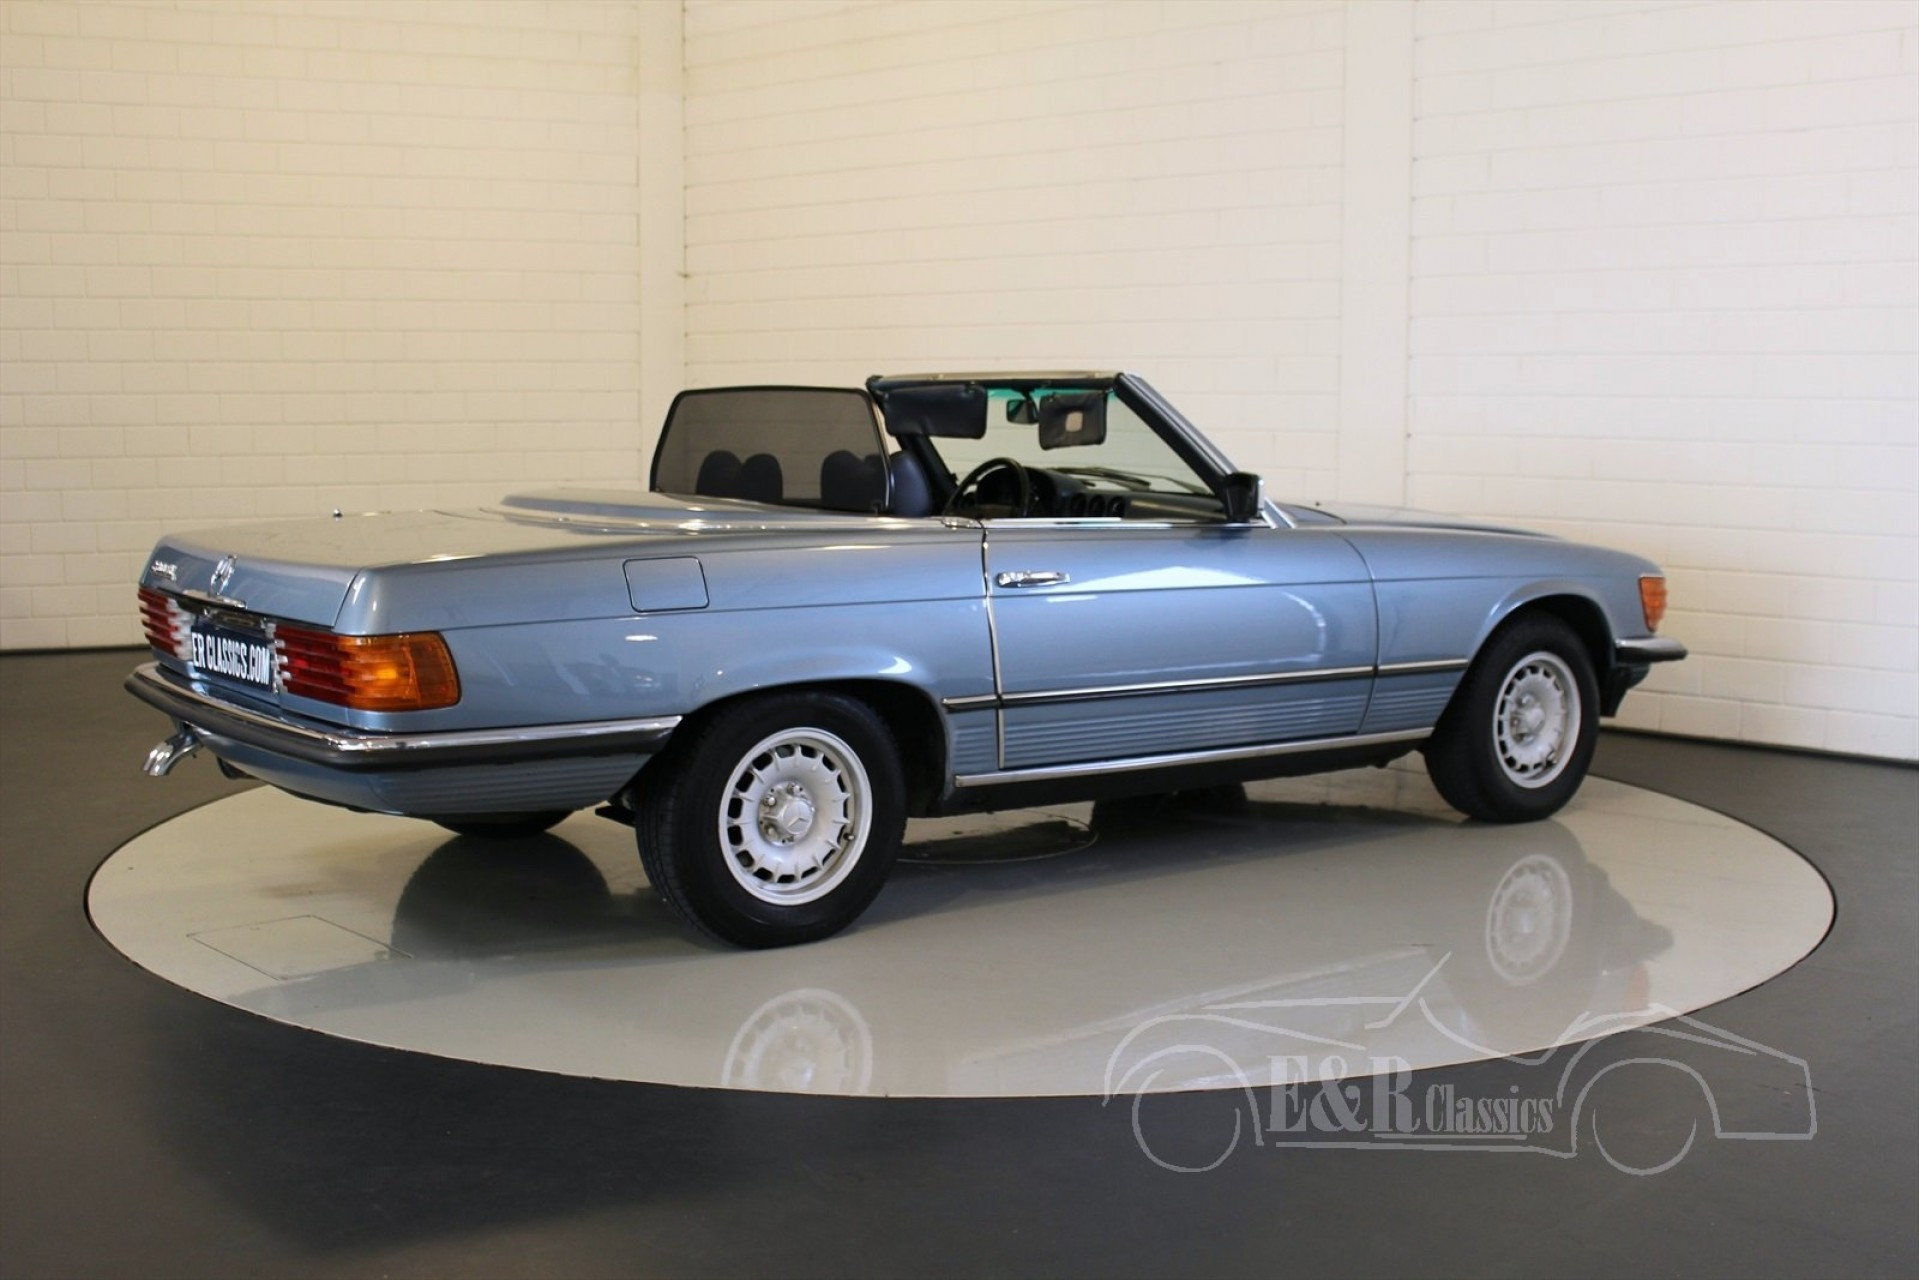 Mercedes benz sl 280 1978 for sale at erclassics for Classic sl mercedes benz for sale